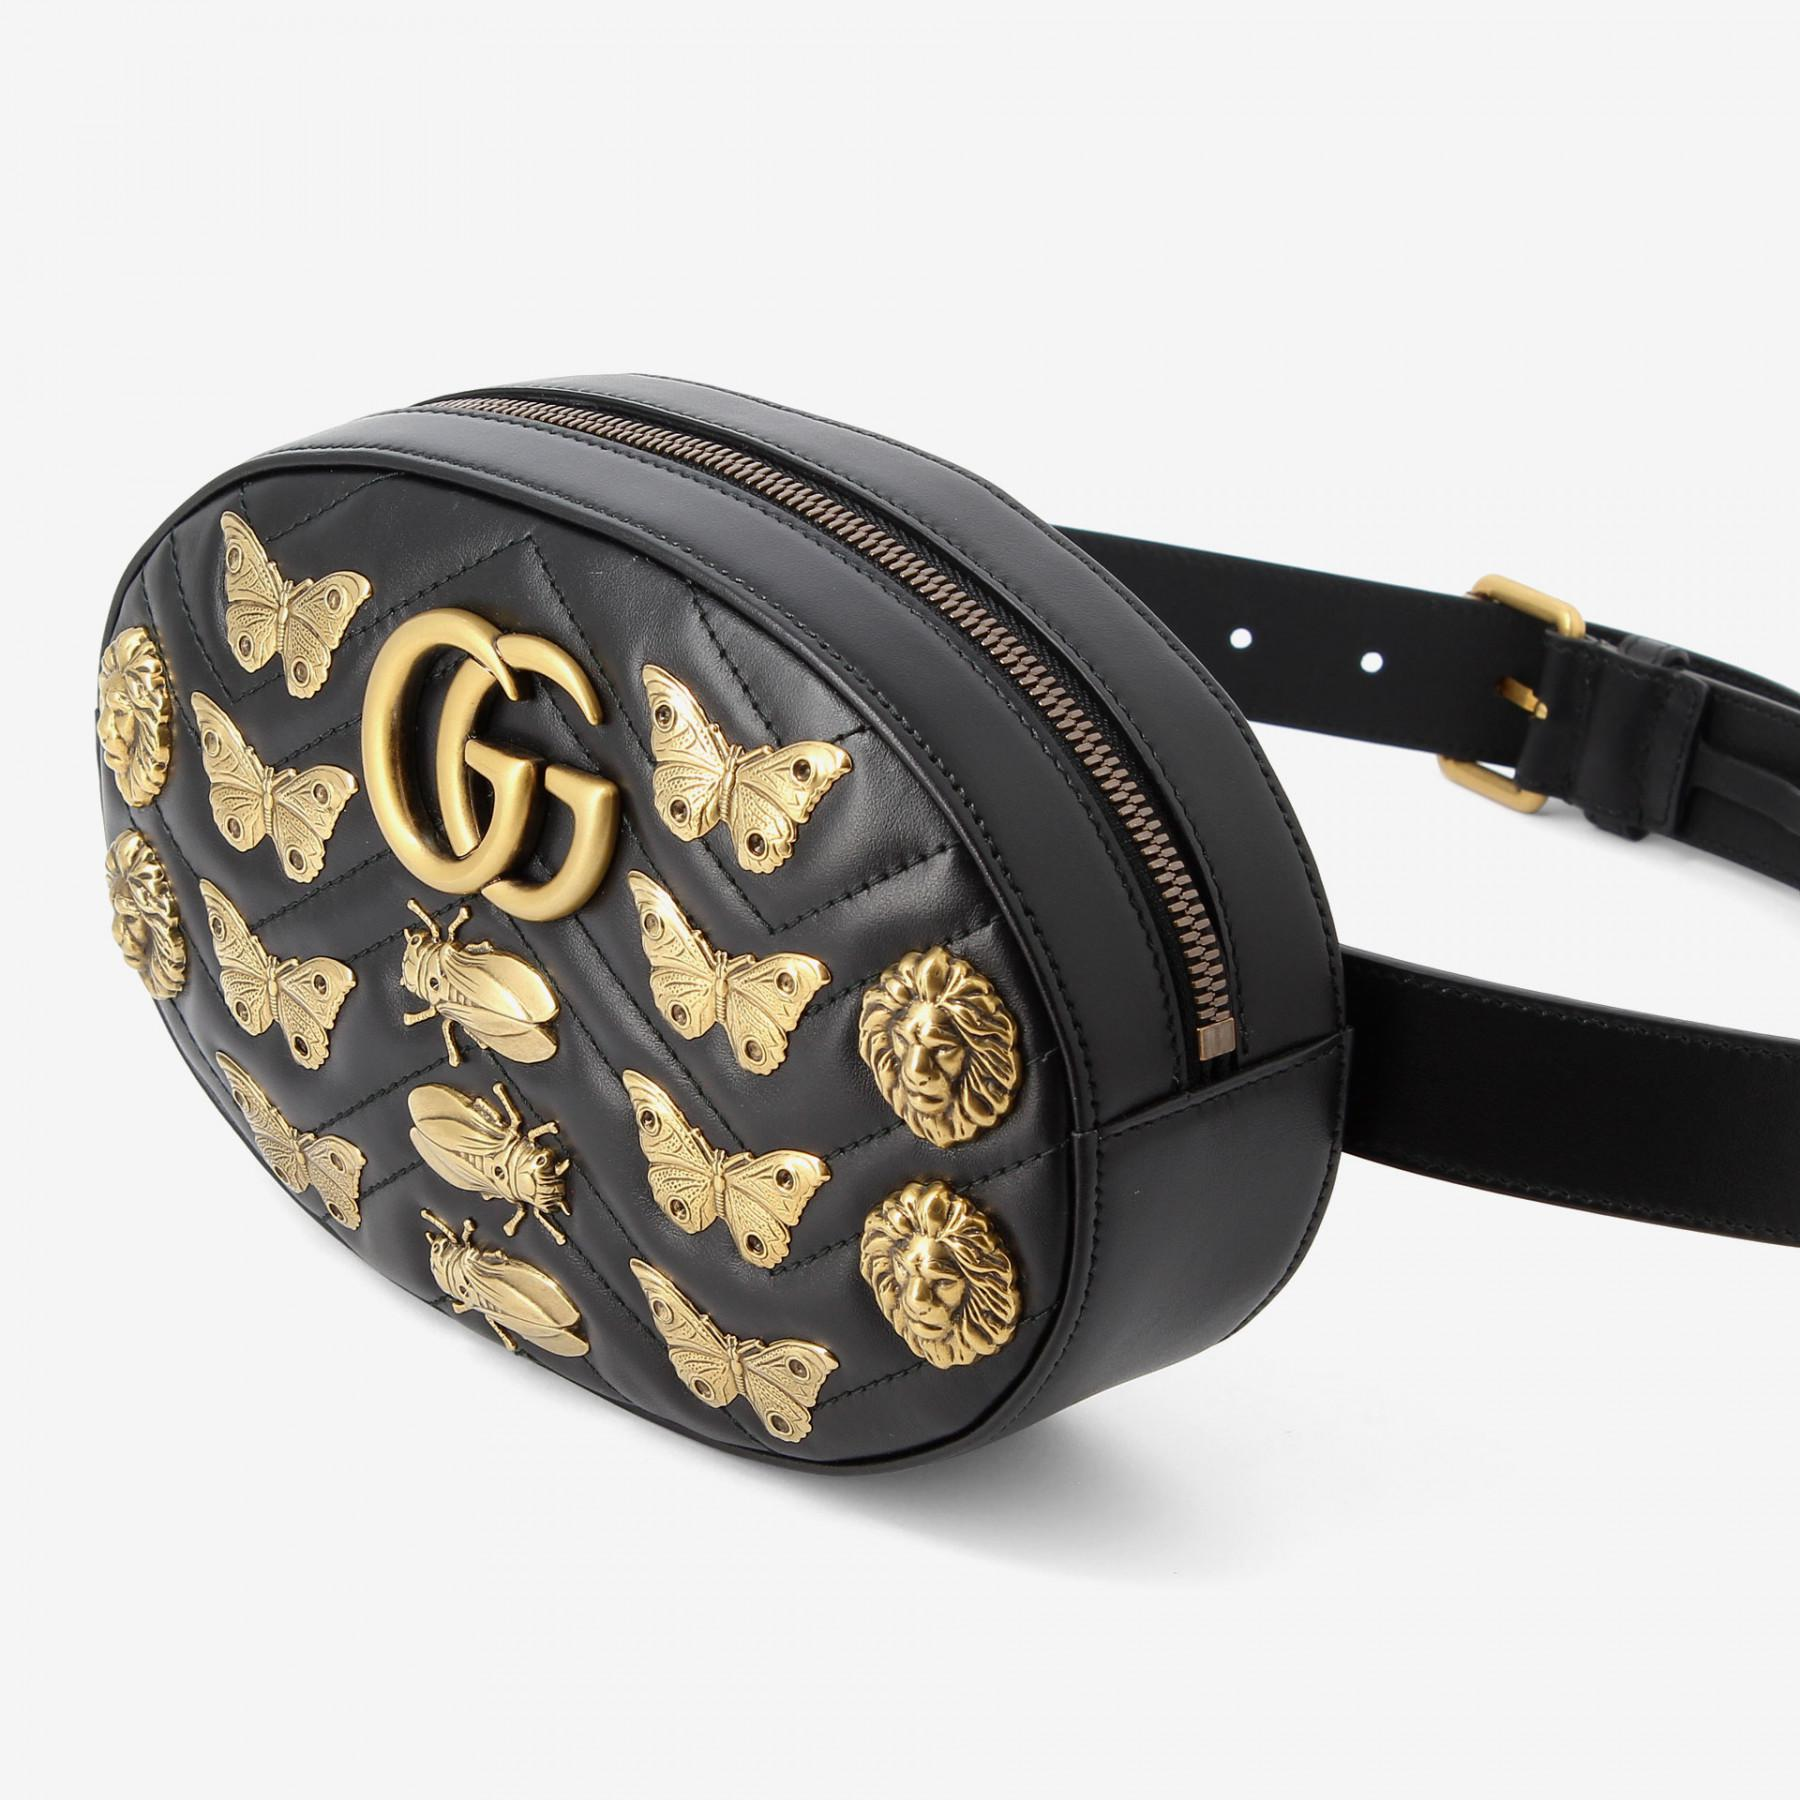 aef3c659af7a Gucci Marmont Animal Studs Leather Belt Bag in Black - Lyst